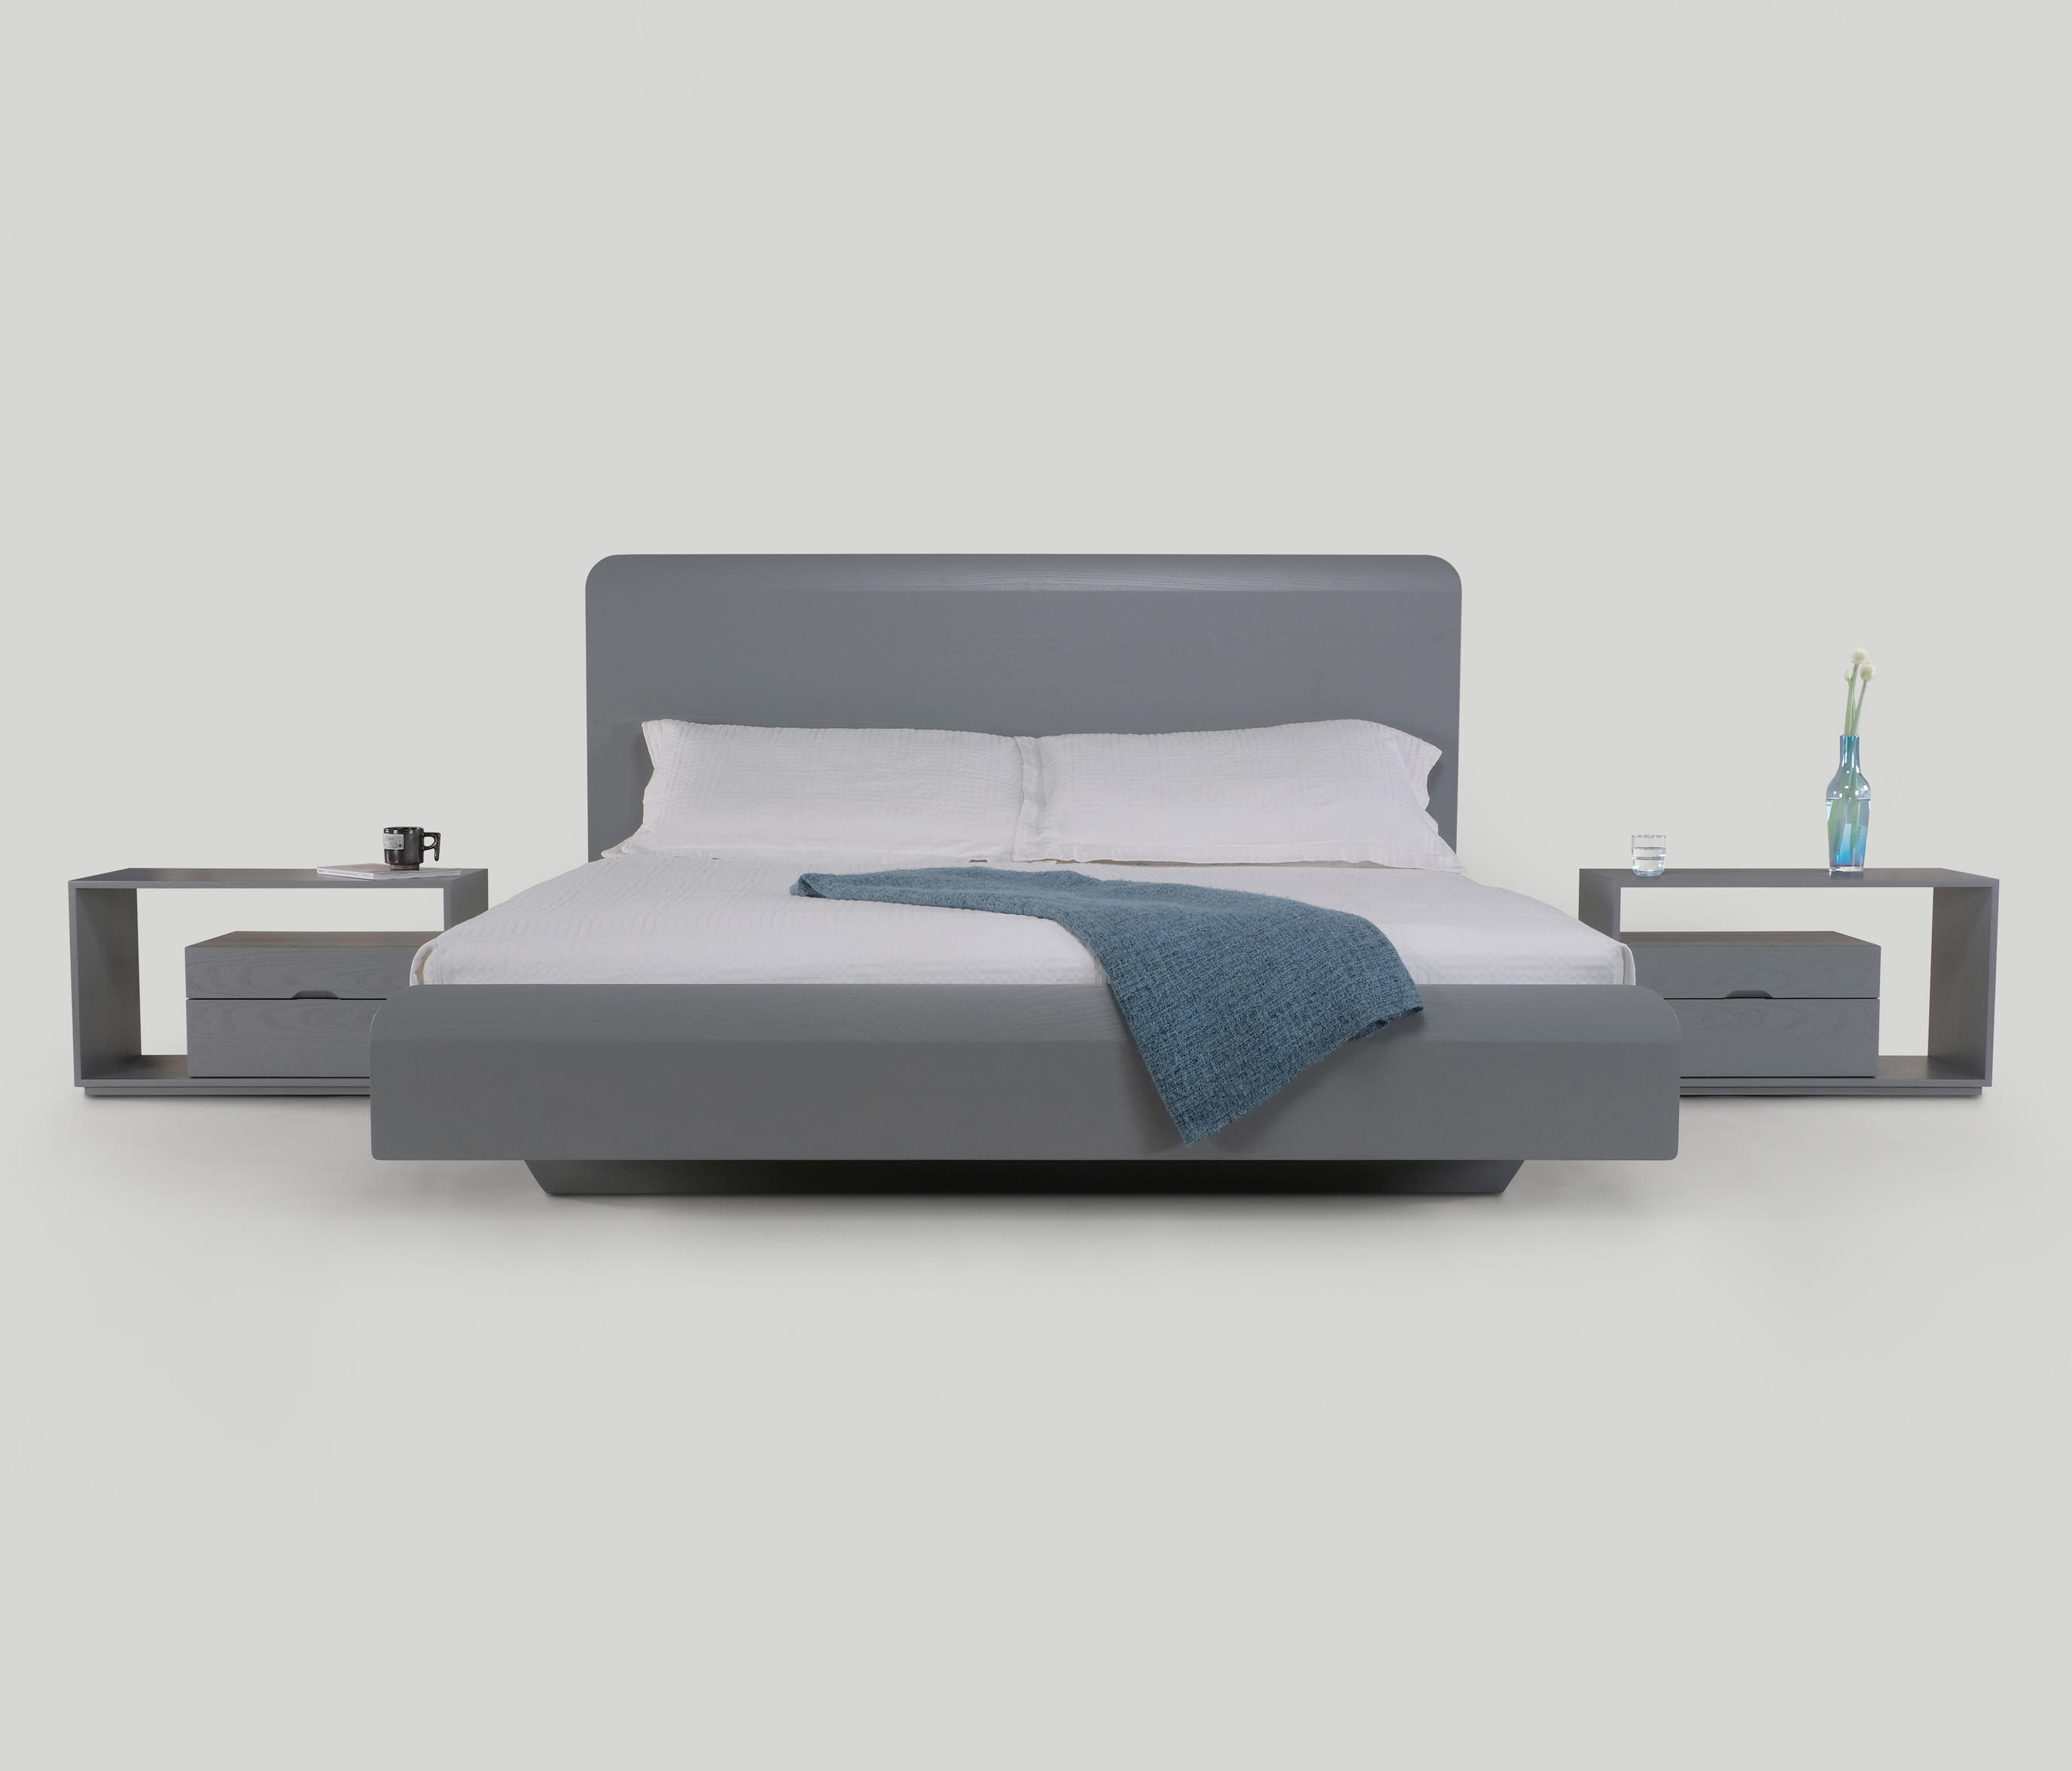 Lineground Bed Beds From Skram Architonic